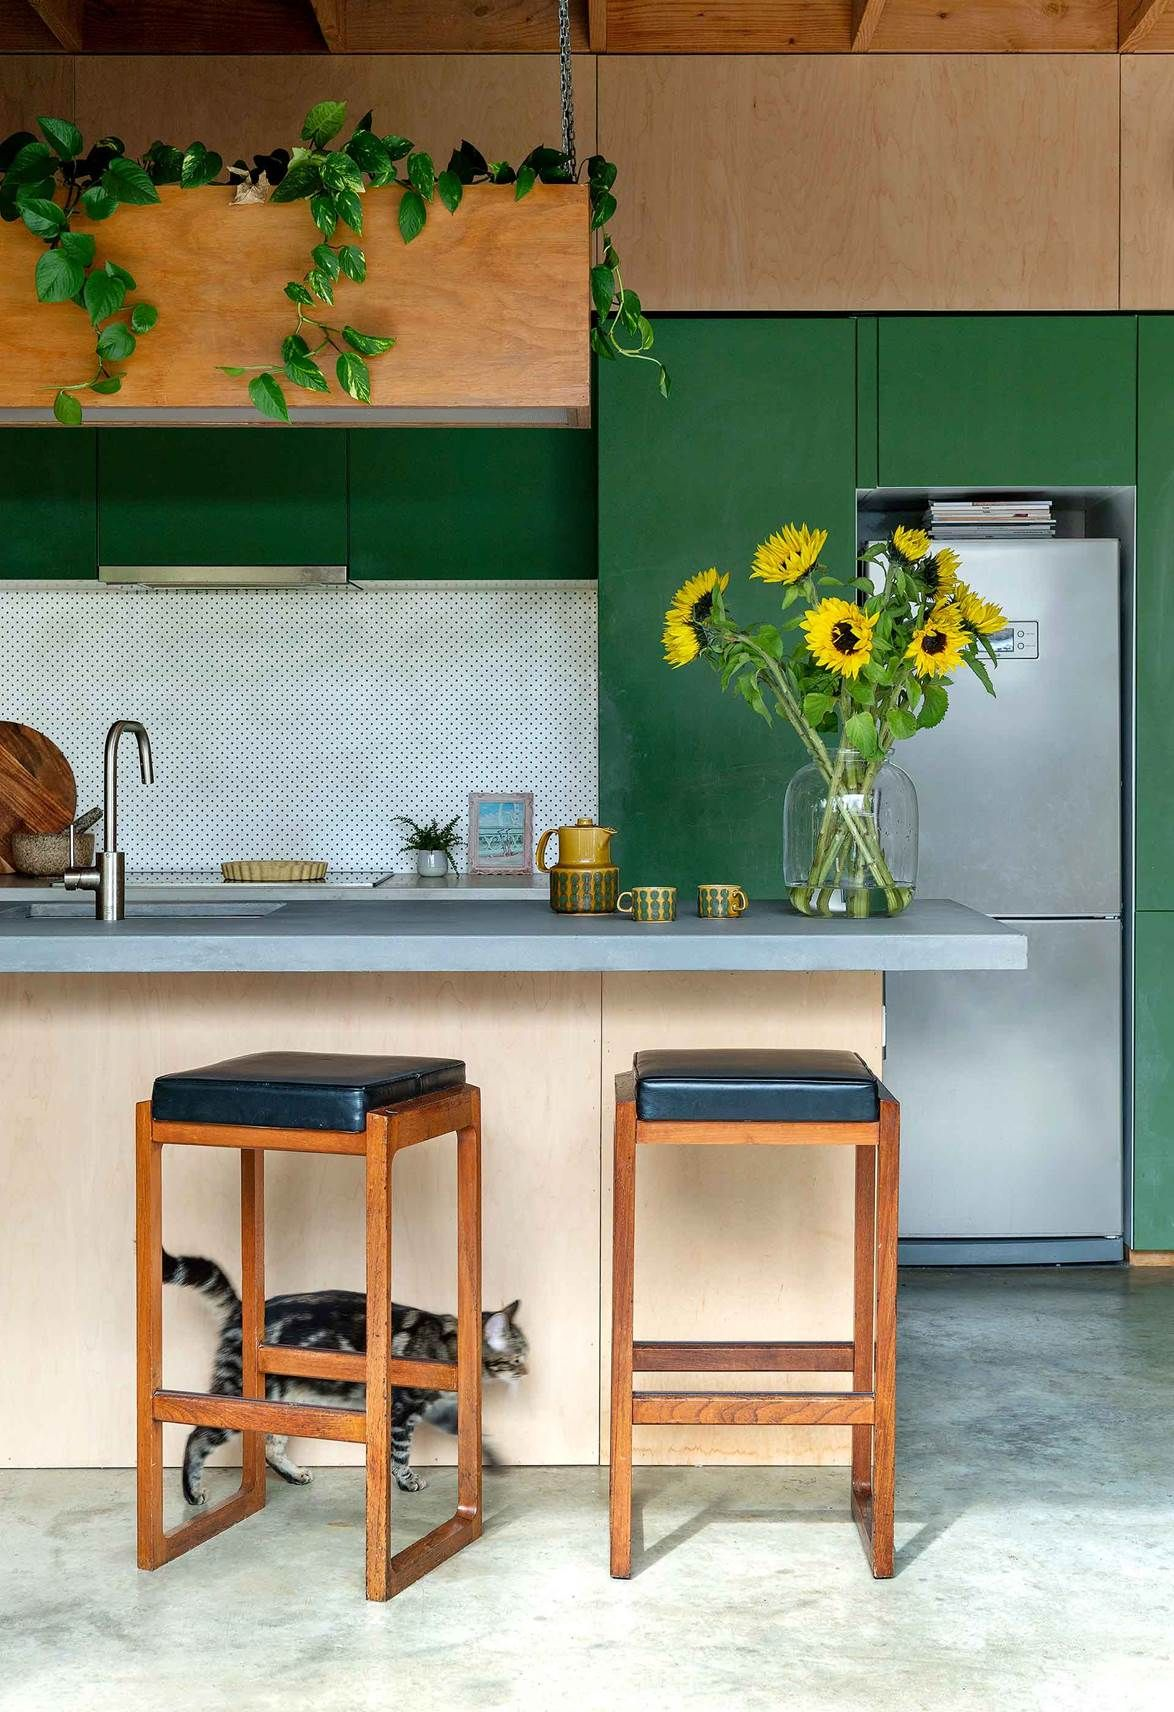 20 kitchen cabinet colour ideas to try in your home ...